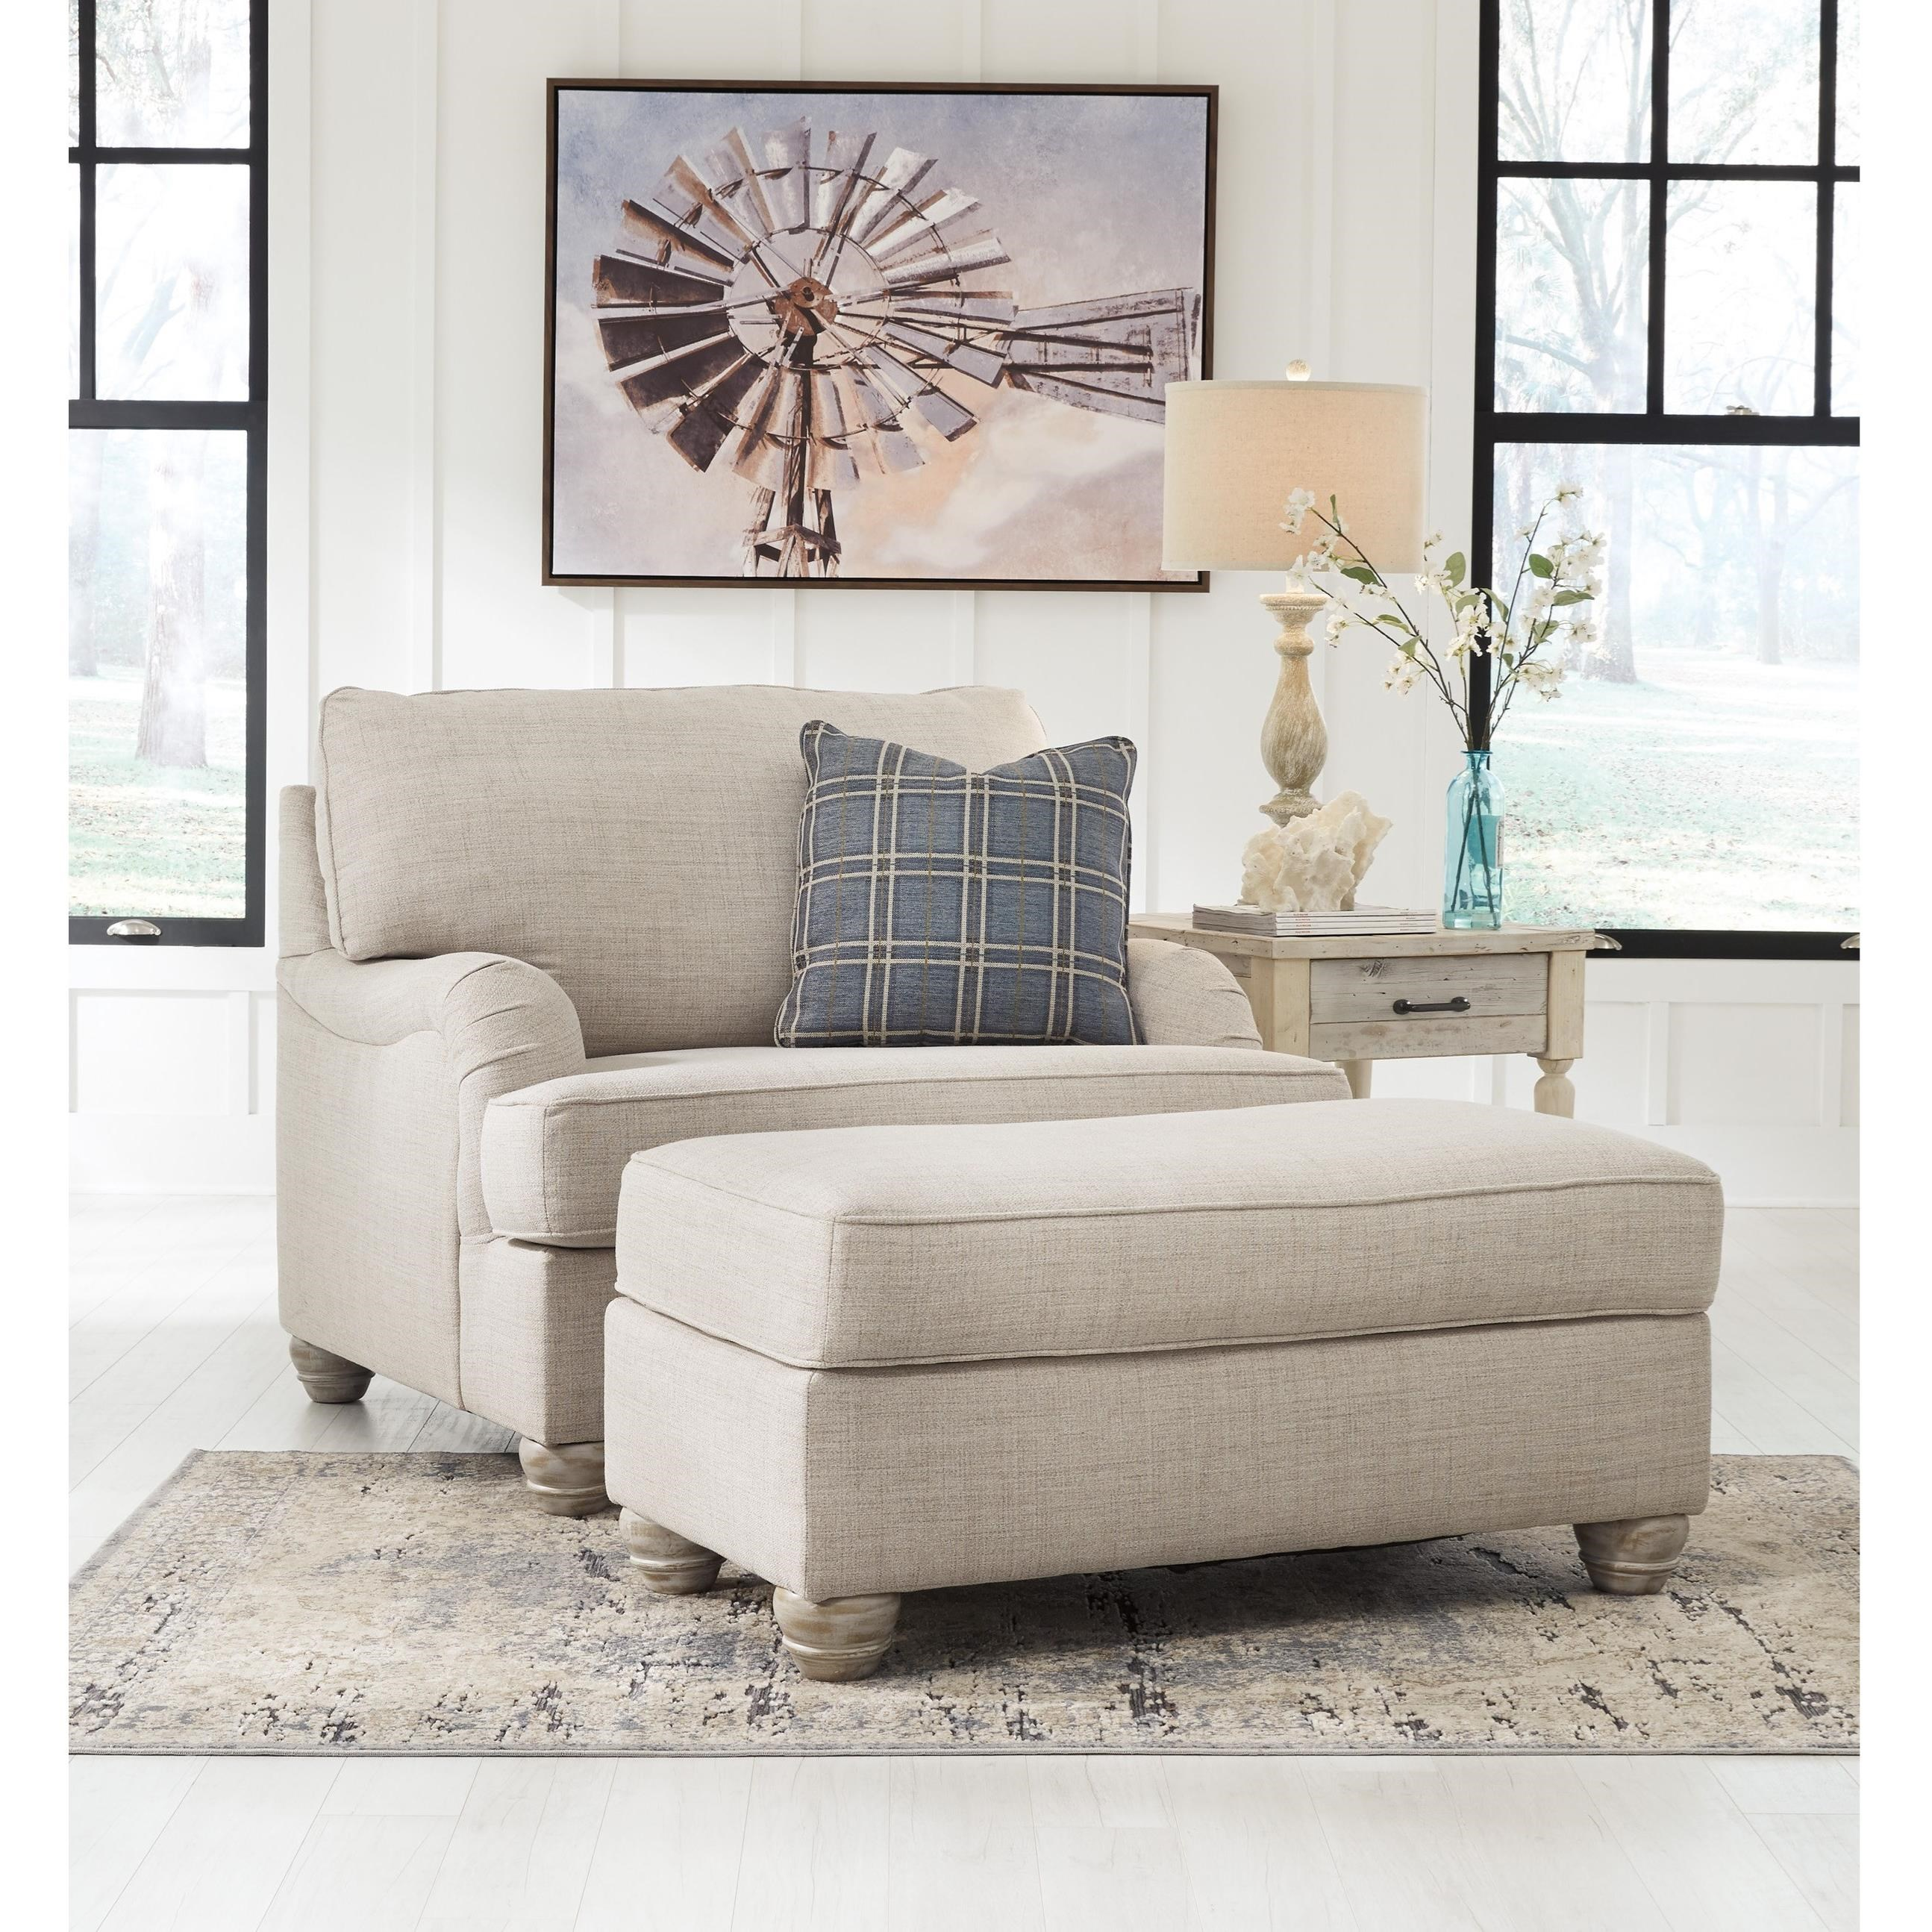 Traemore Chair and a Half with Ottoman by Benchcraft at Walker's Furniture